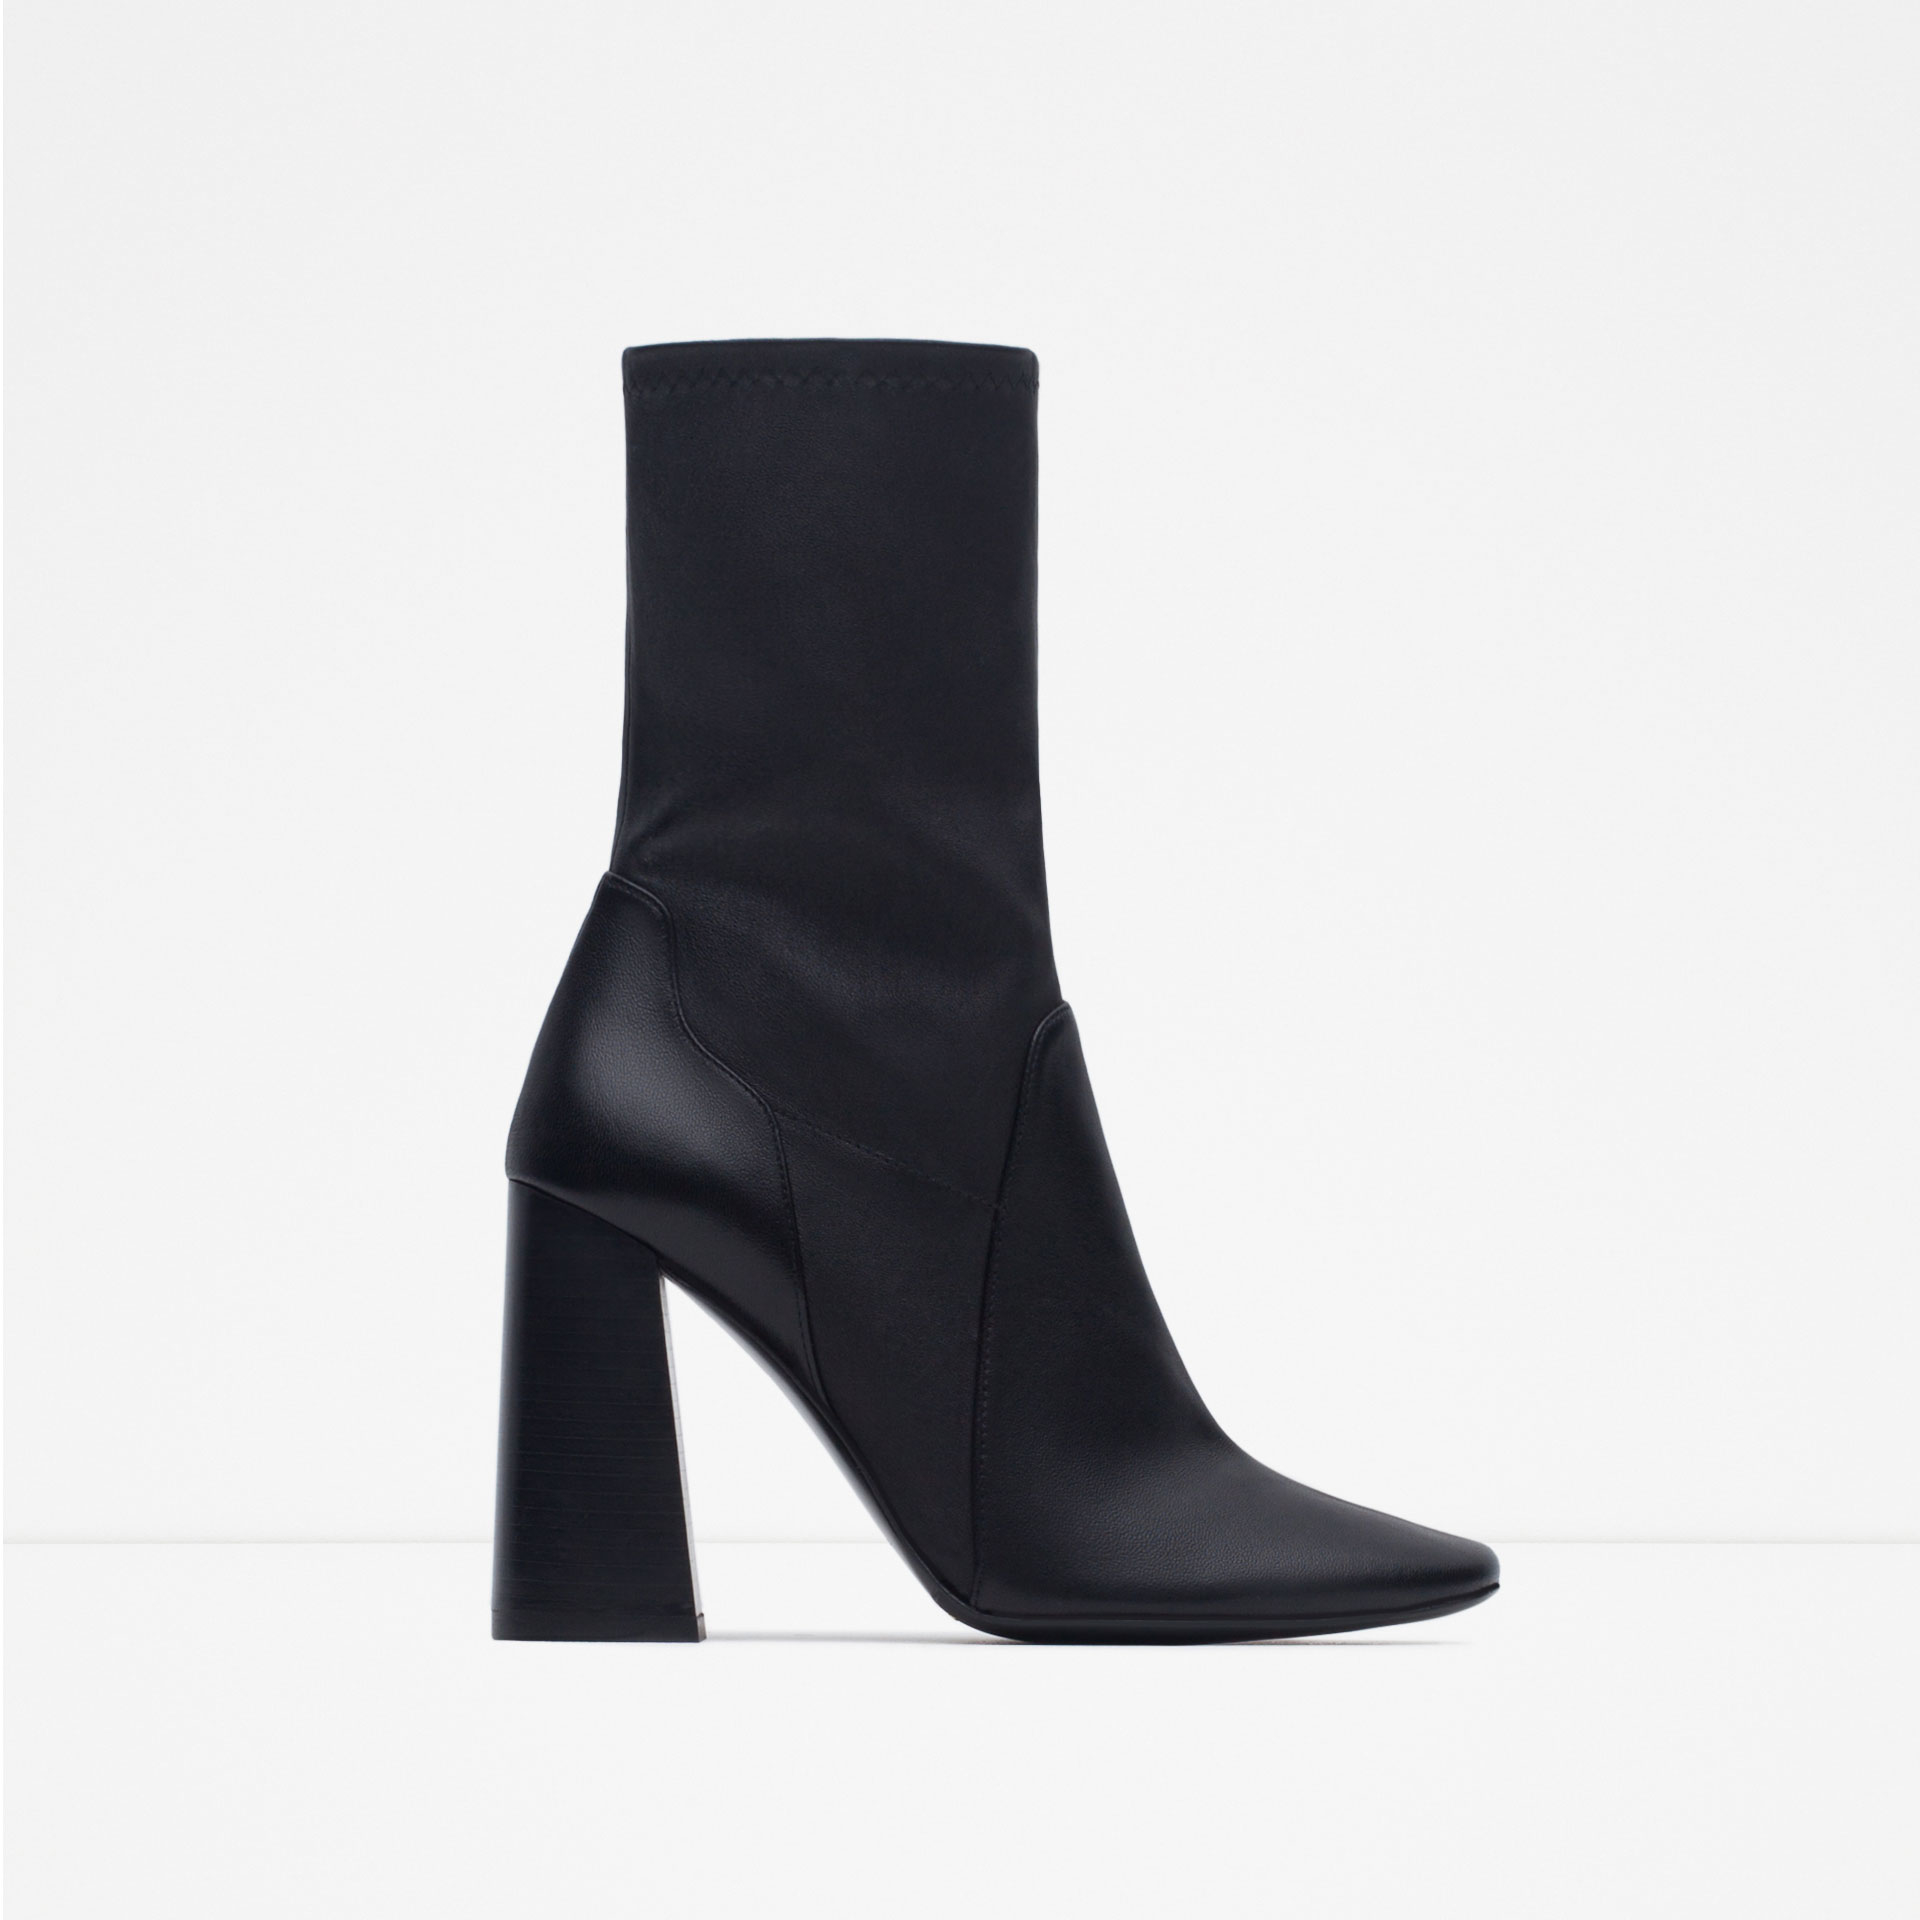 Image result for zara chunky heel boots